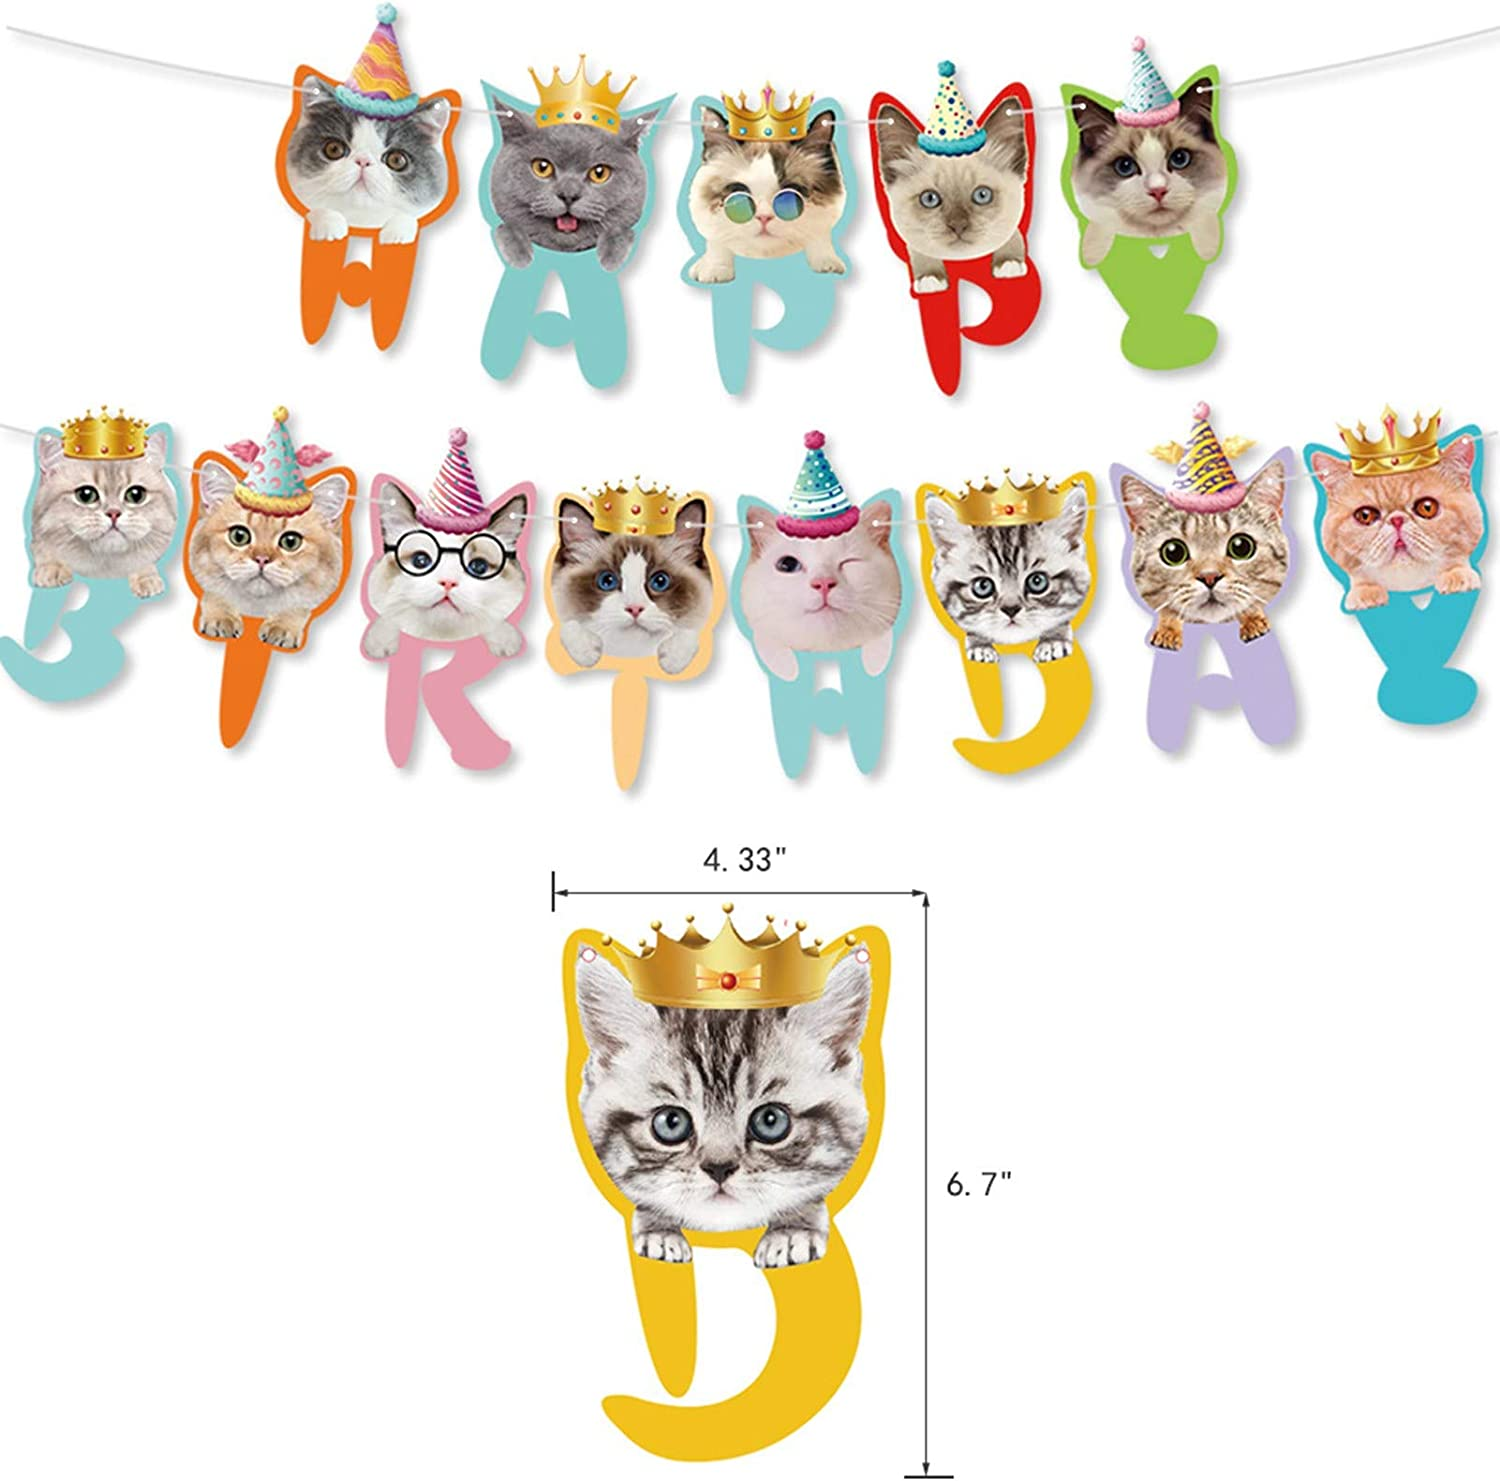 35 Pieces Pet Cat Birthday Party Supplies,Including Cat Birthday Banner,Cat Cake Topper and Cupcake Topper,Cat Paw Cat Head Balloon for Pet Cat Party Decoration